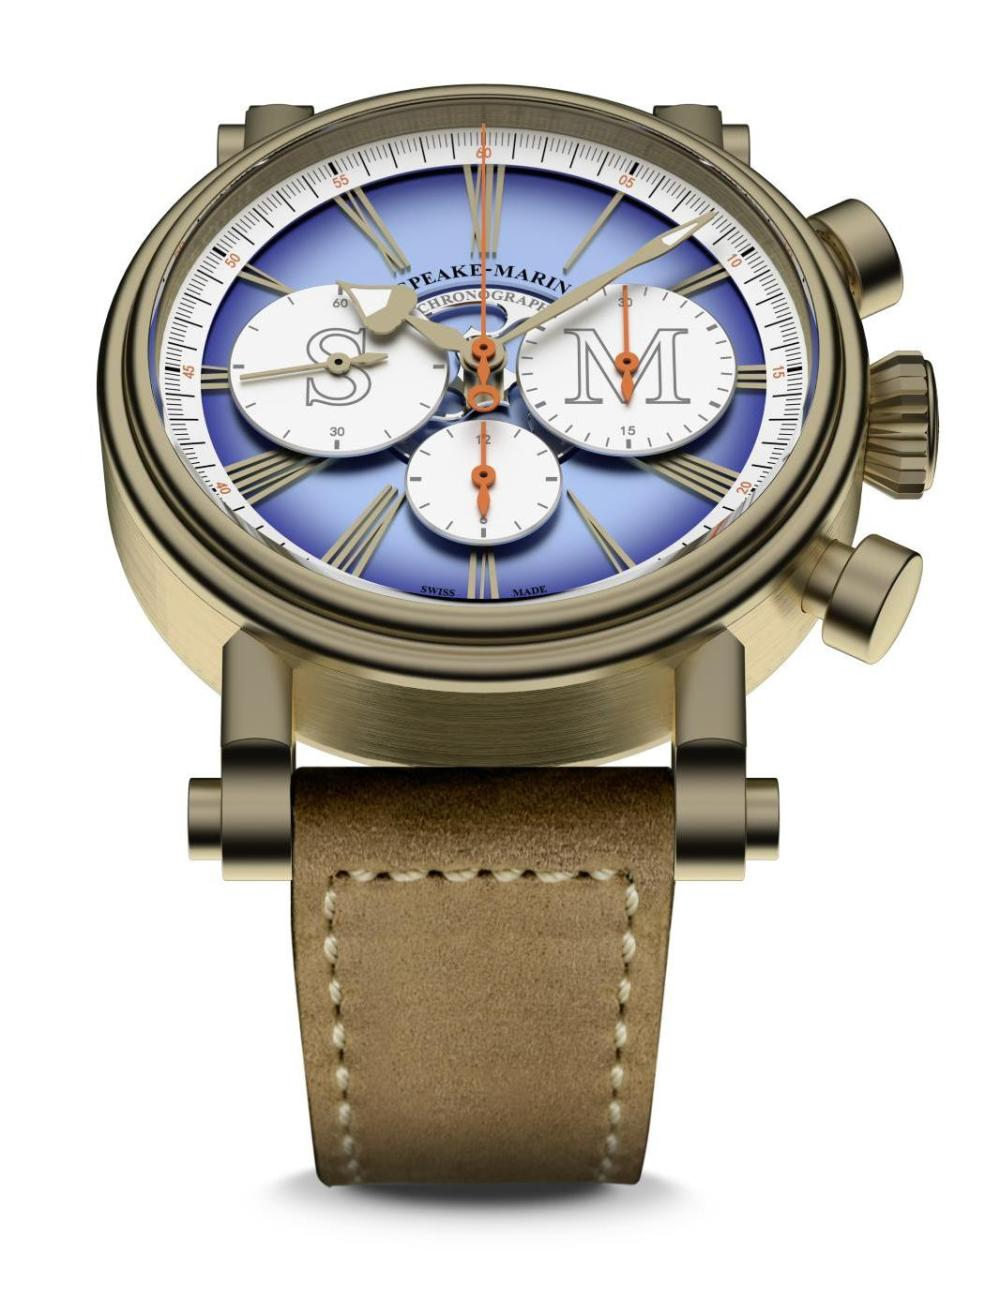 Speake-Marin London Chronograph Bronze